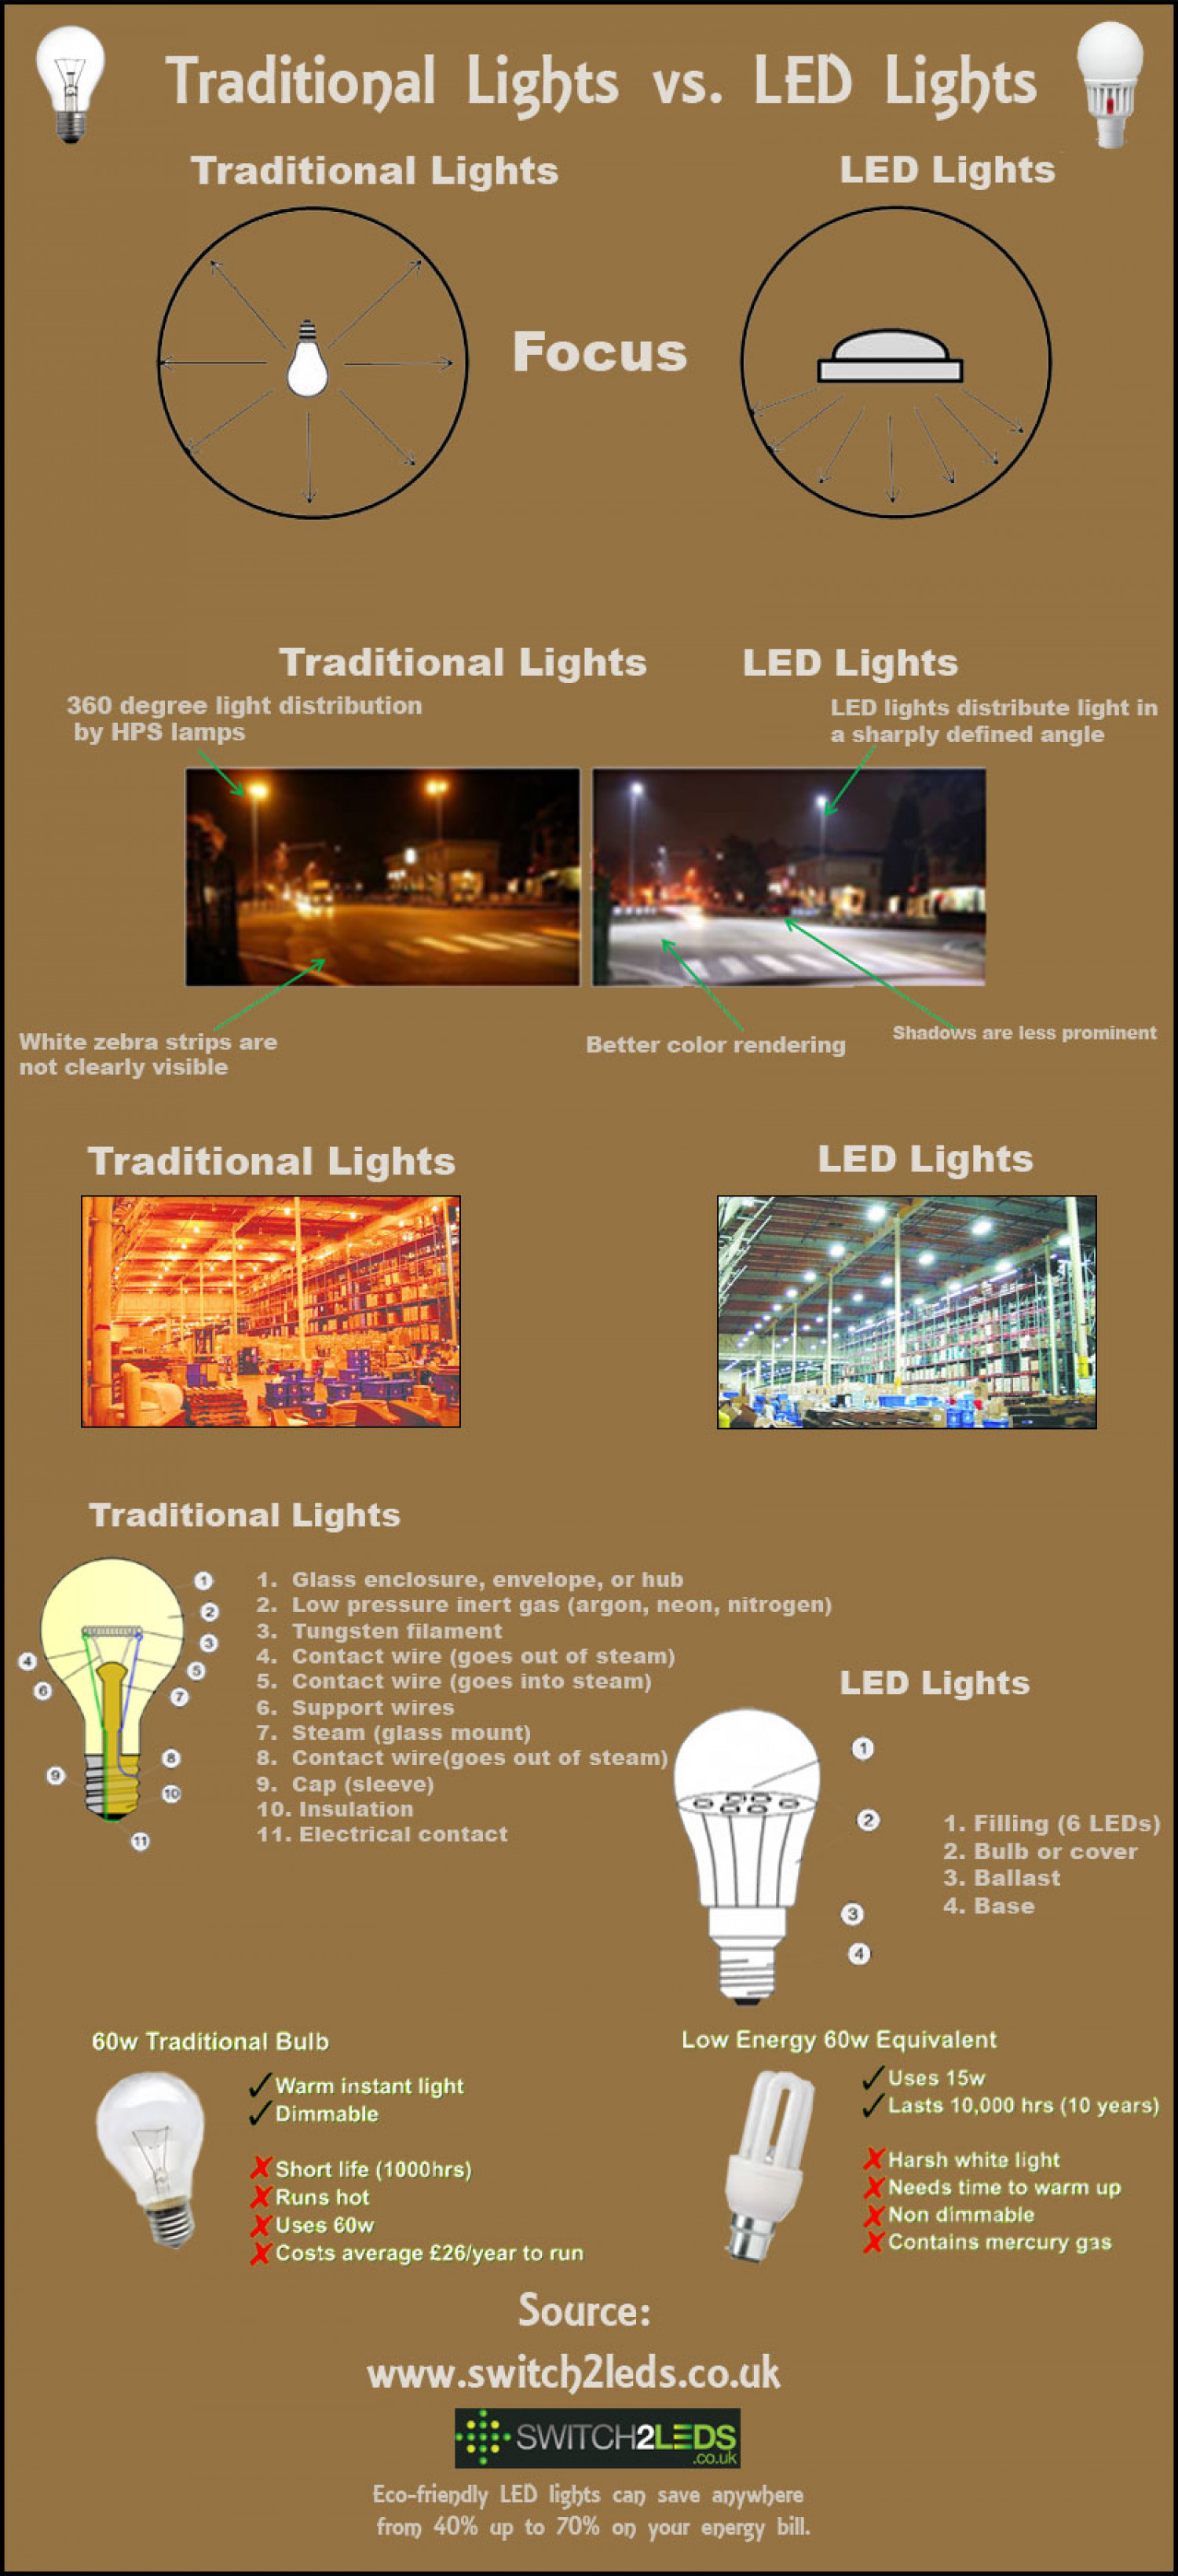 Traditional Lights vs LED Lights Infographic